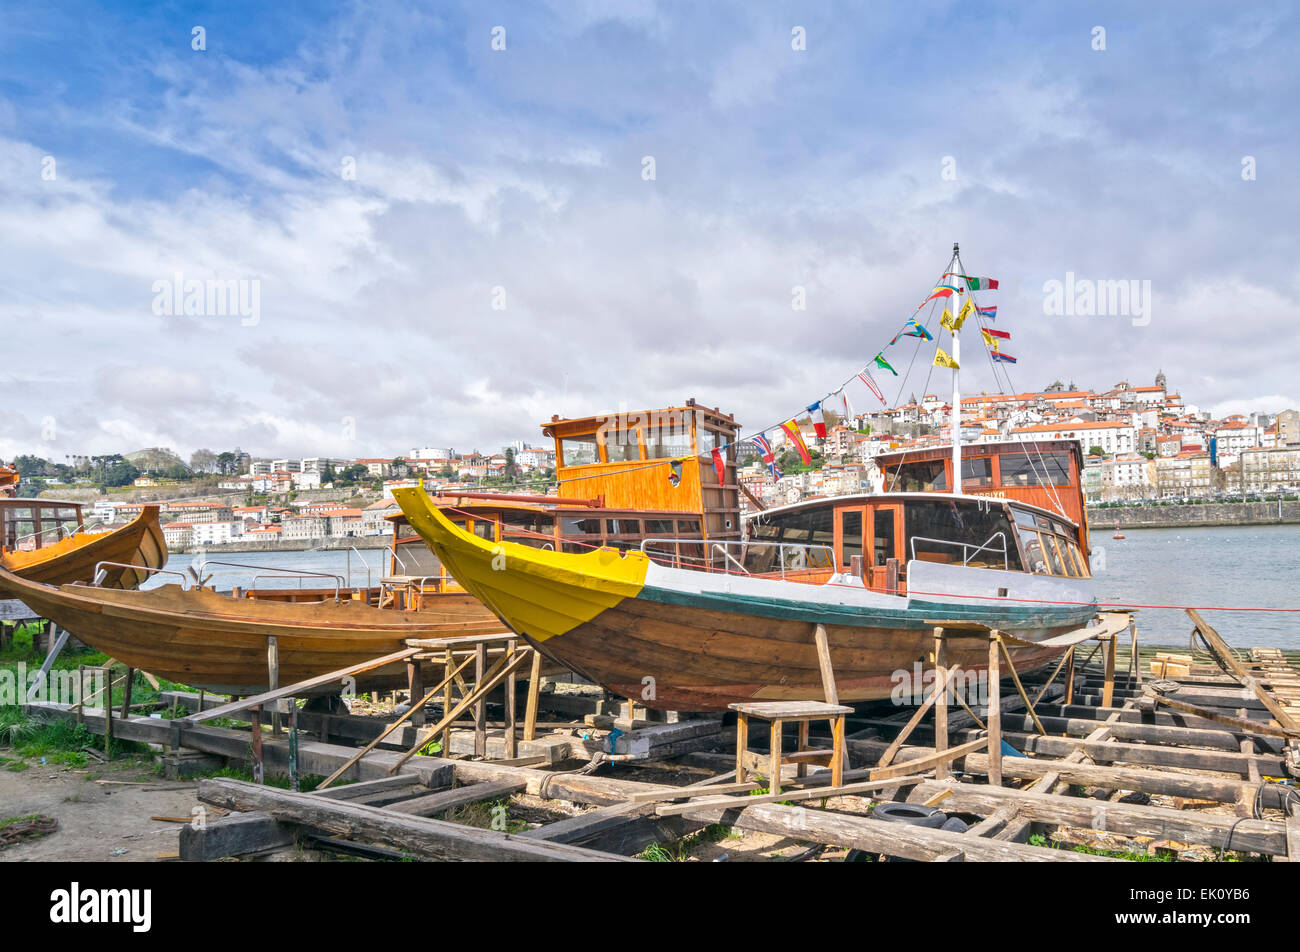 PORTUGAL PORTO  THE RIVER DOURO WOODEN BOATS AND OPEN AIR BOAT REPAIR YARD ALONGSIDE THE RIVER Stock Photo